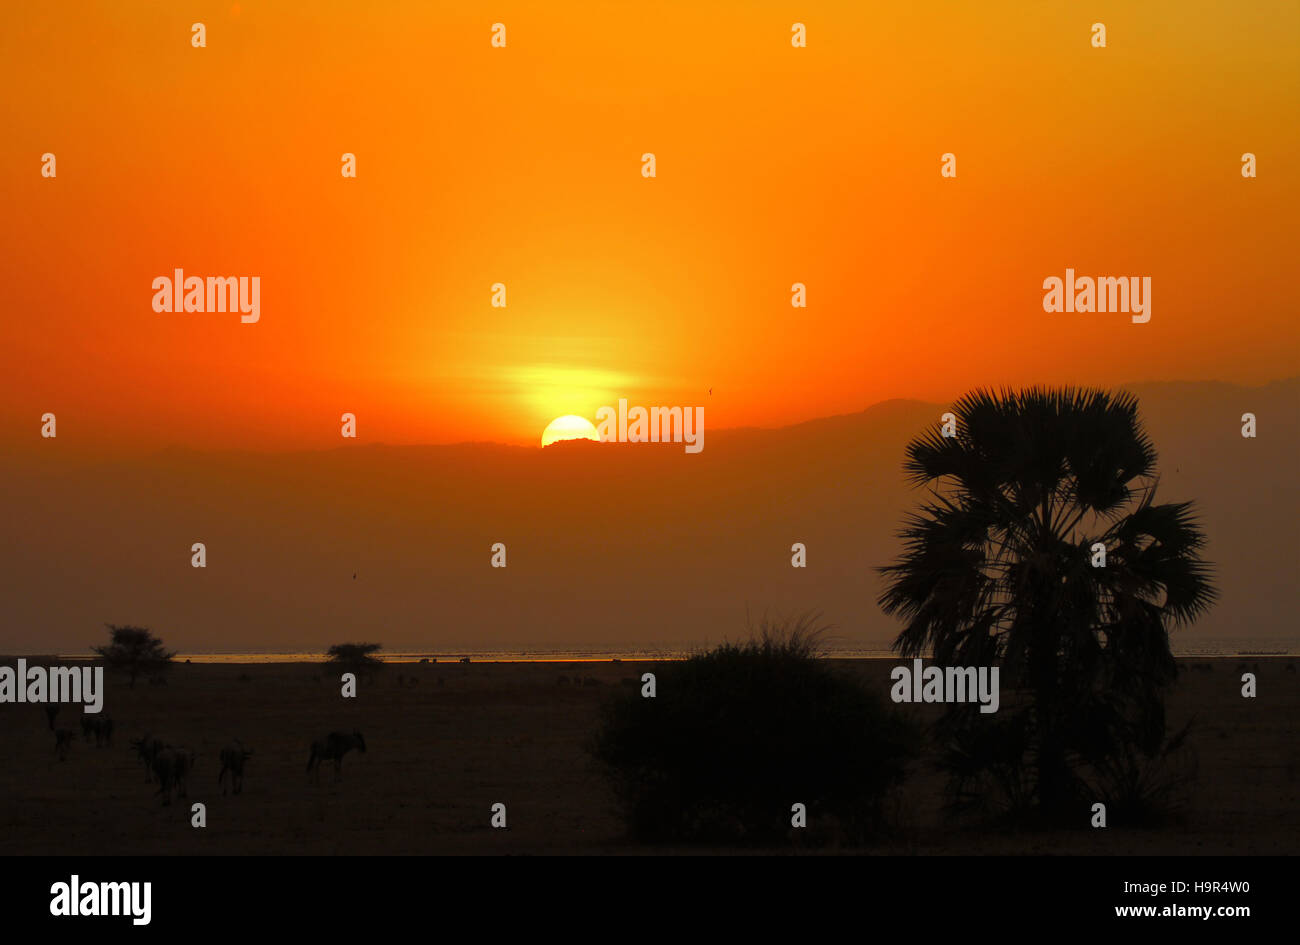 Sunset over the Serengeti plains in Africa. - Stock Image